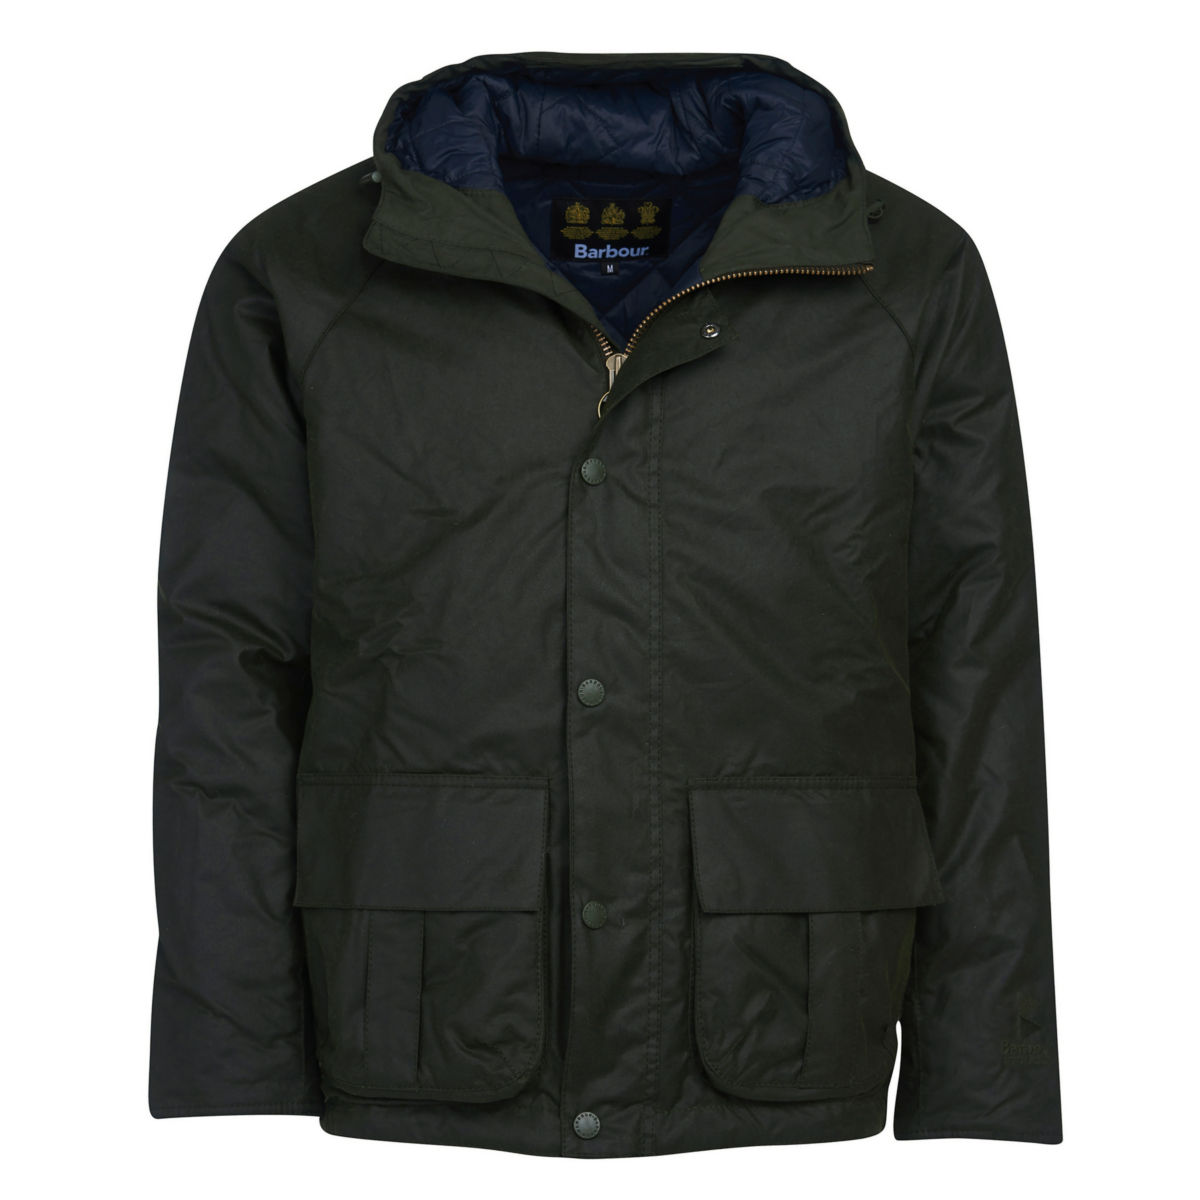 Barbour® Harrow Waxed Cotton Jacket - FORESTimage number 0